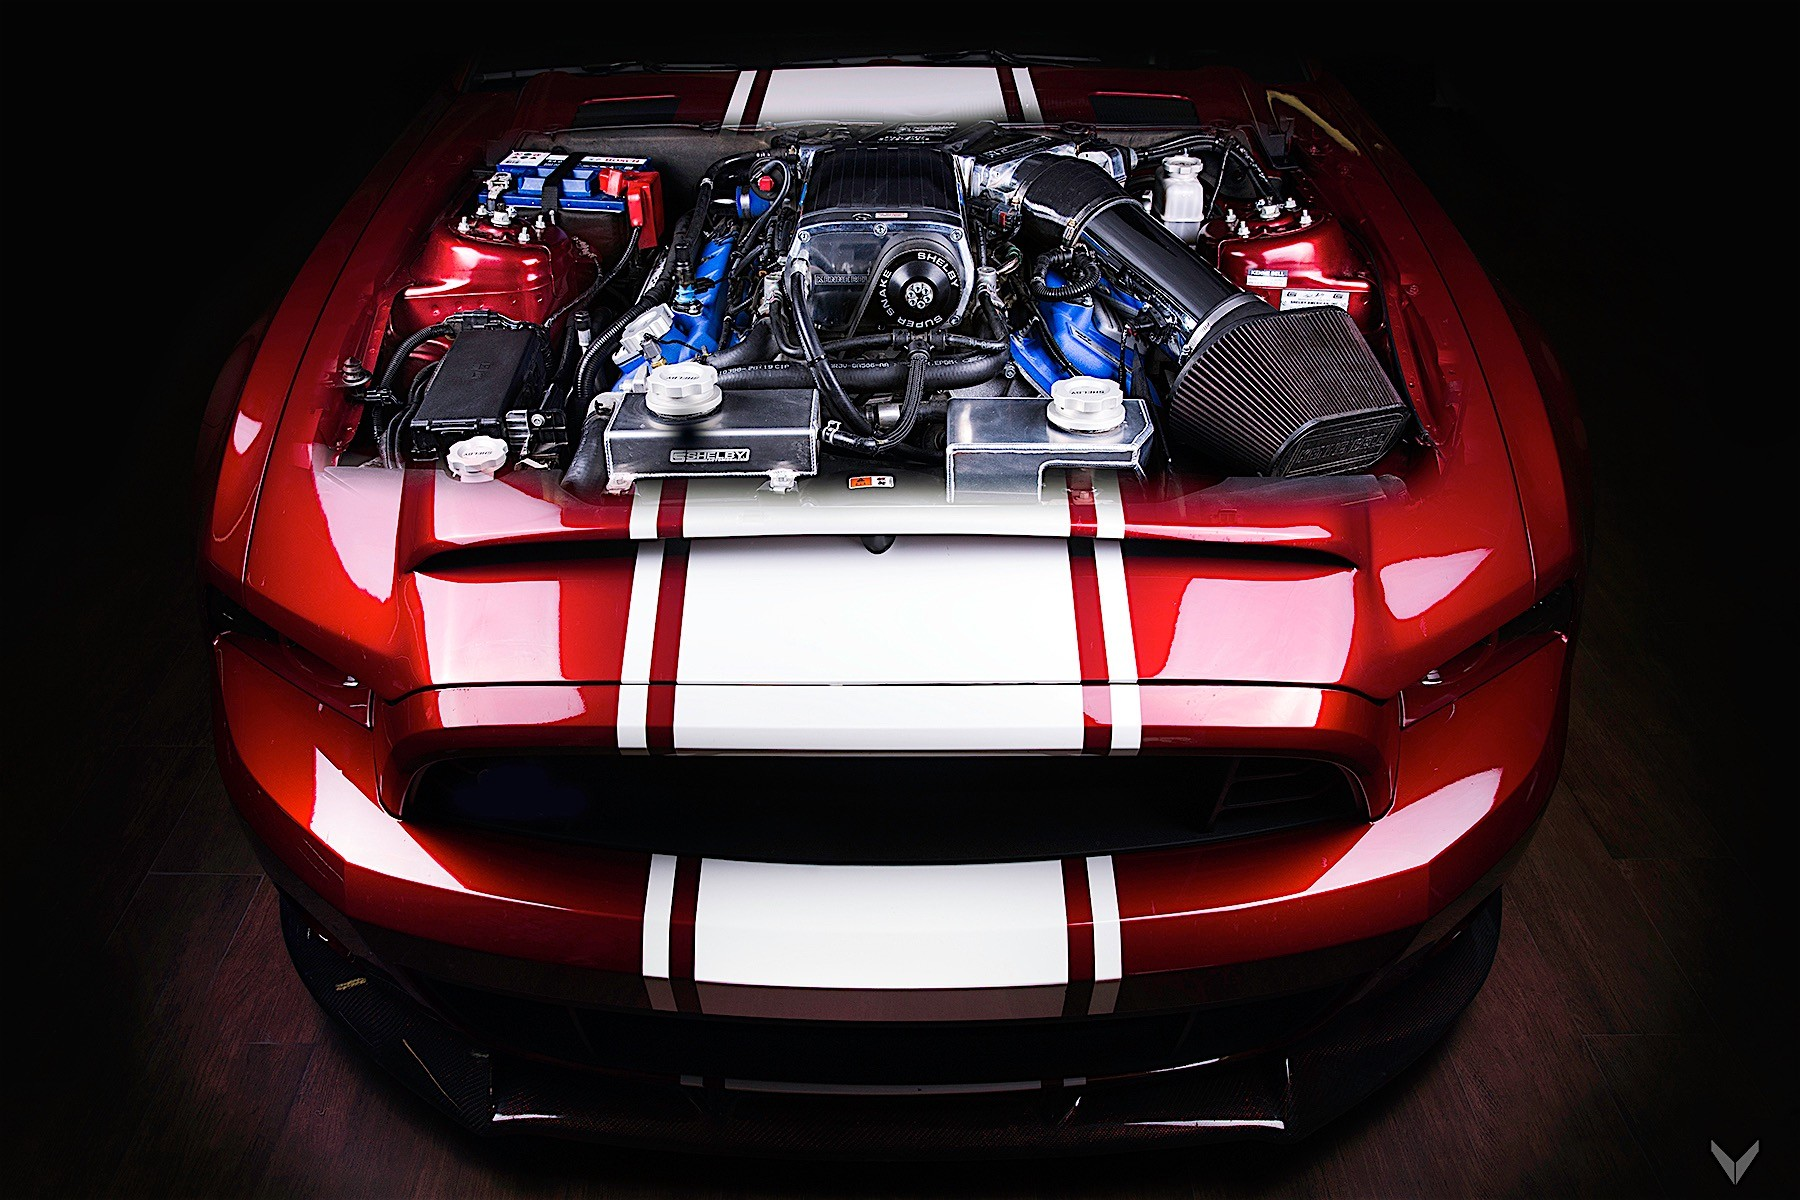 Mustang Super Snake >> Watch a Classic Mustang Being Reborn in the High Tech Era ...